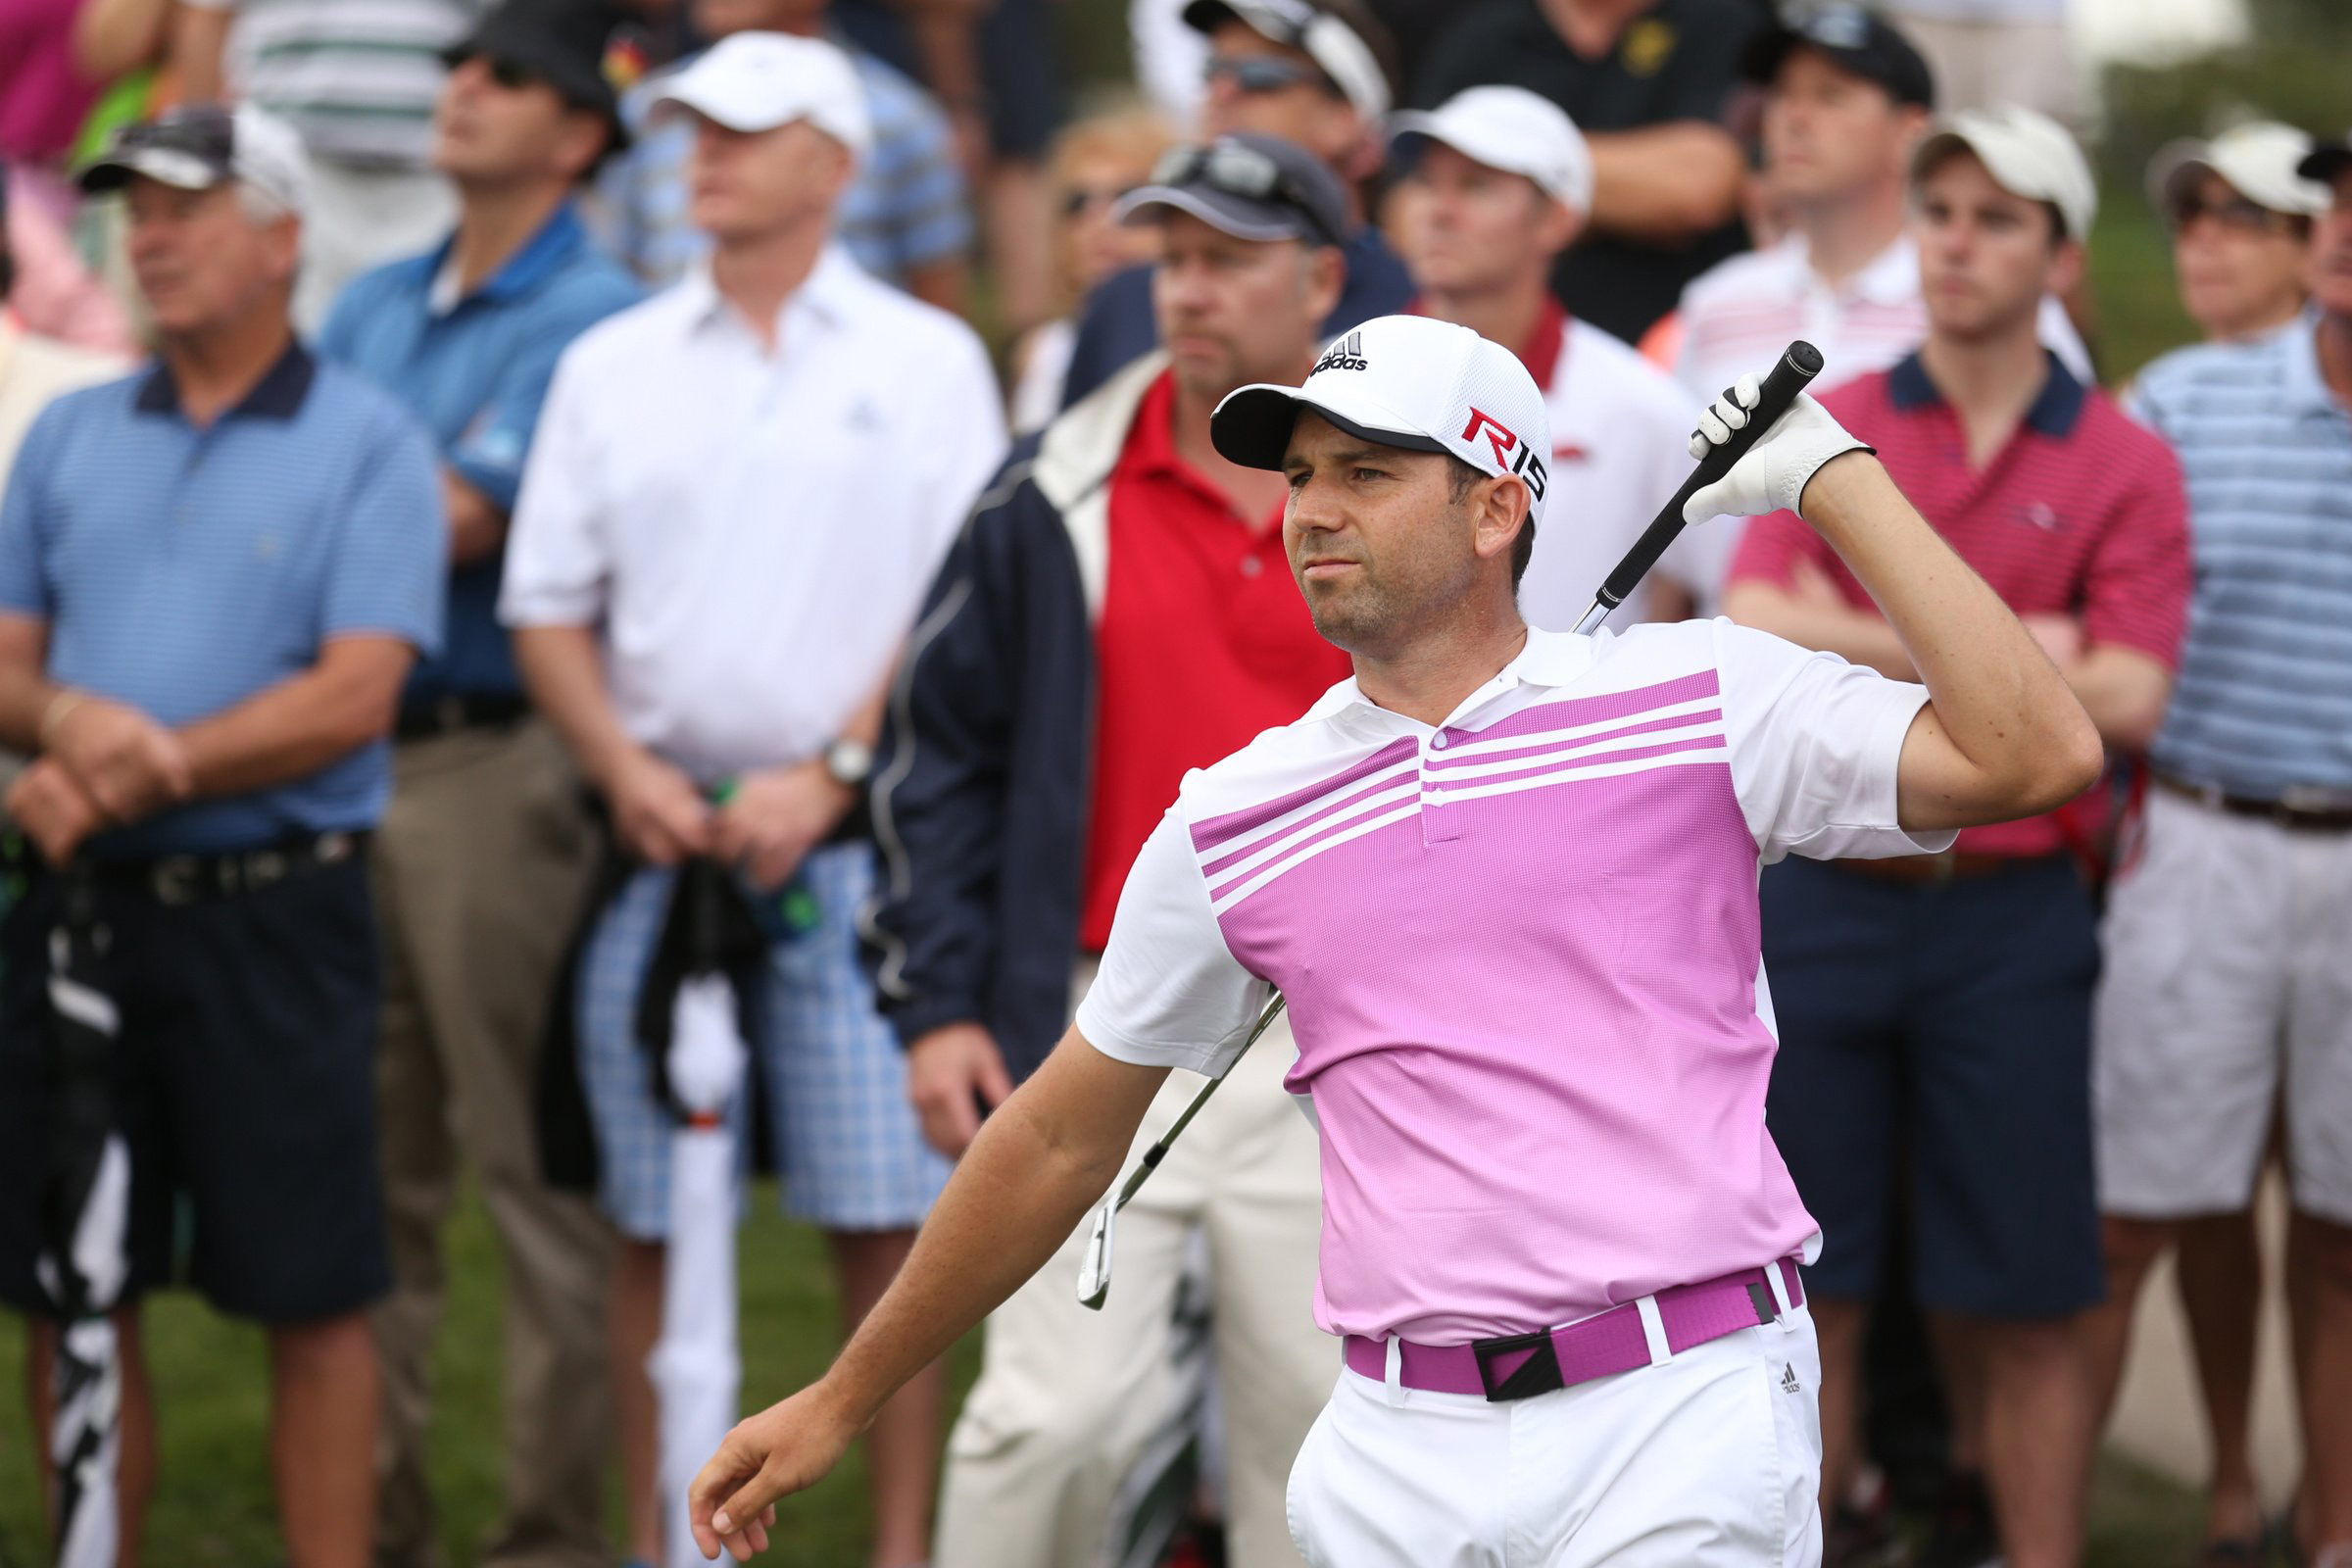 Sergio Garcia was T25 after two rounds at the Honda Classic.